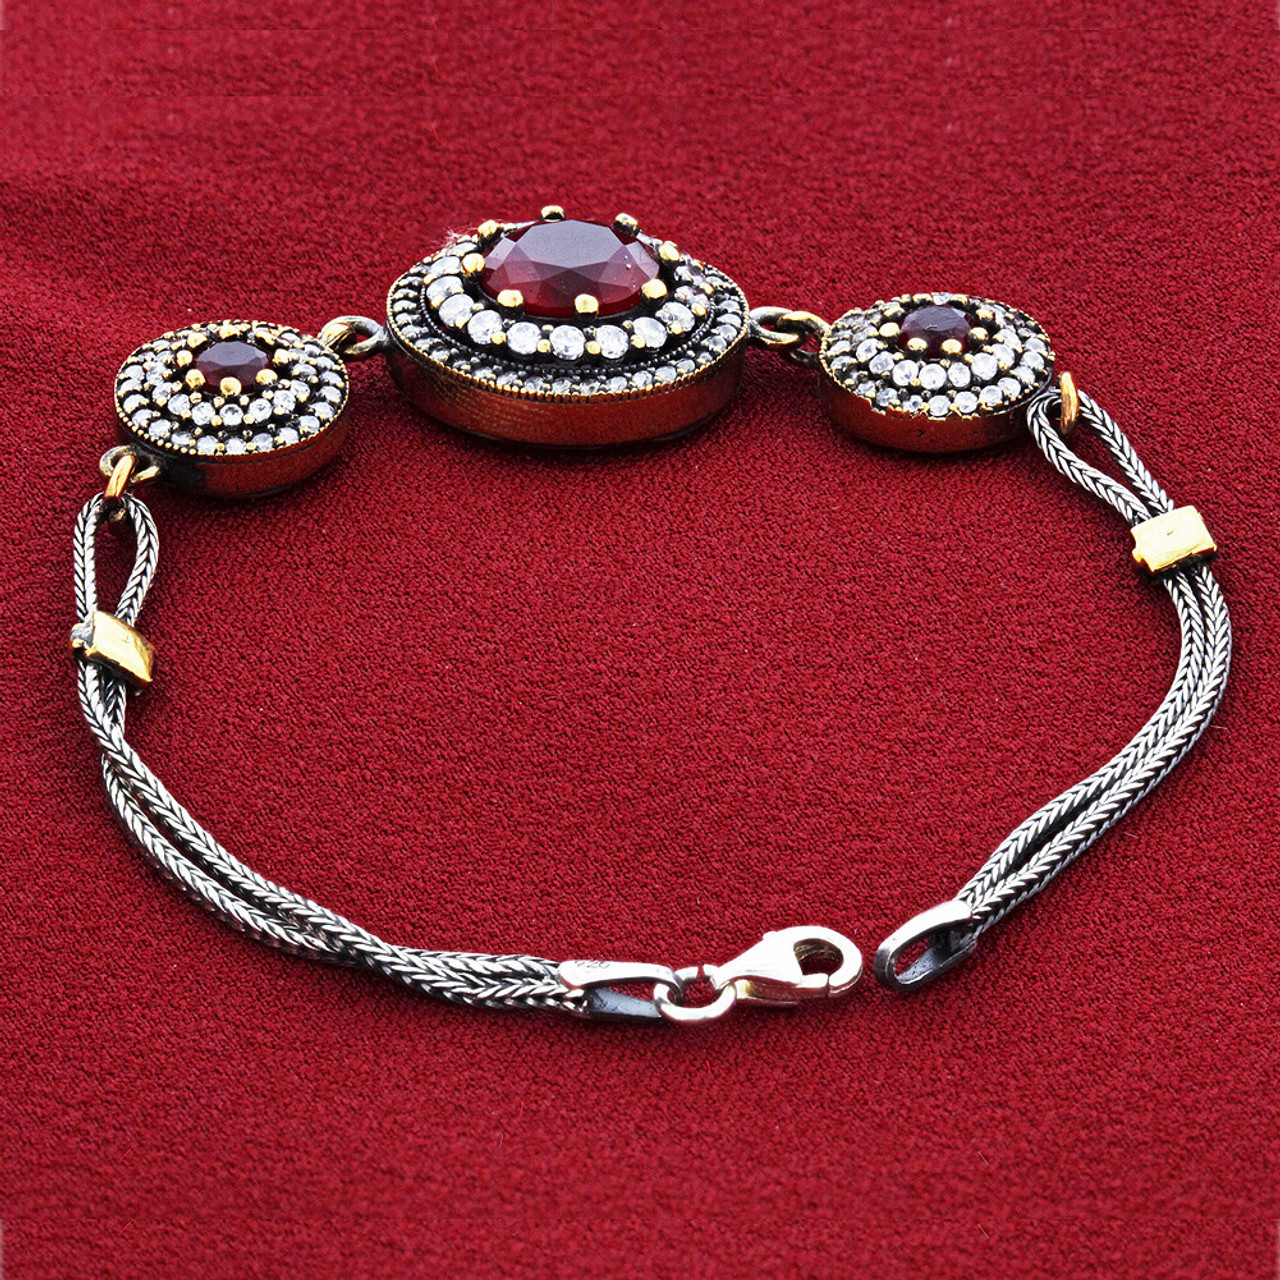 Gold over Sterling Silver Vermeil 12mm Simulated Garnet Glass with CZ Bracelet 7.5 inch